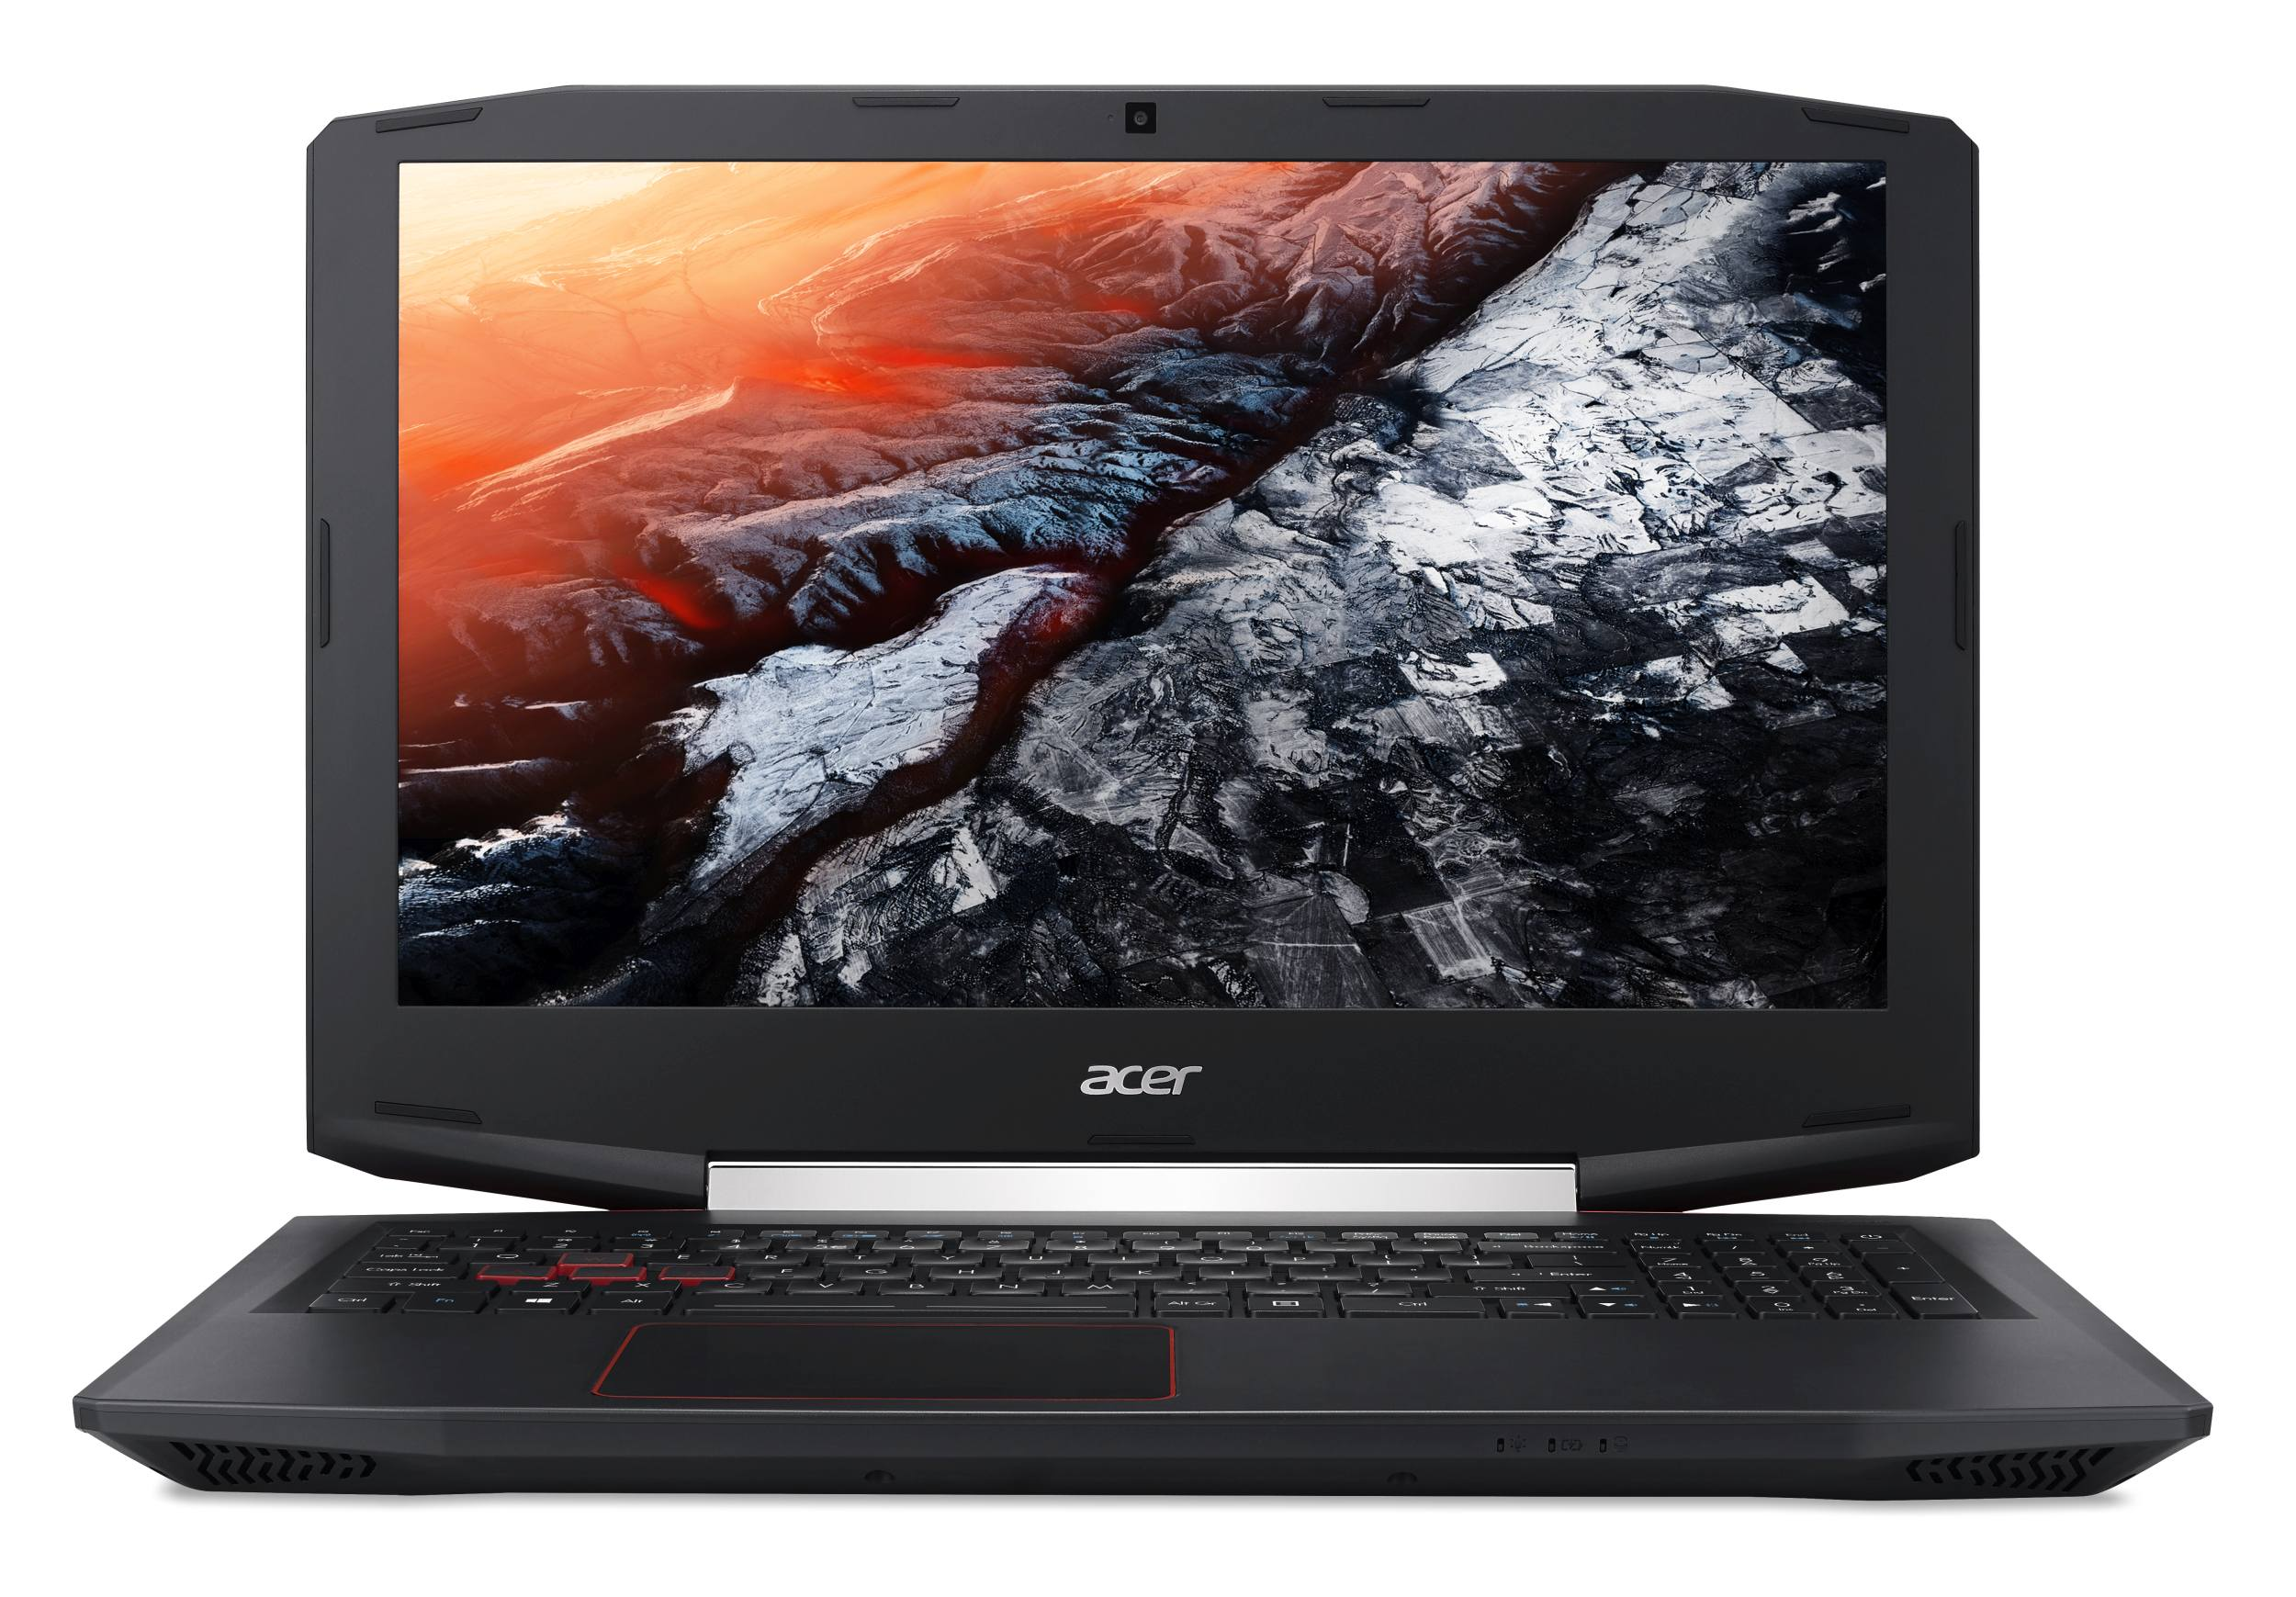 "Acer Aspire VX 15 (VX5-591G-5108) i5-7300HQ/8GB+N/1TB+N/GTX 1050 4GB/15.6"" FHD matný LED/BT 4.0/W10 Home/Black"